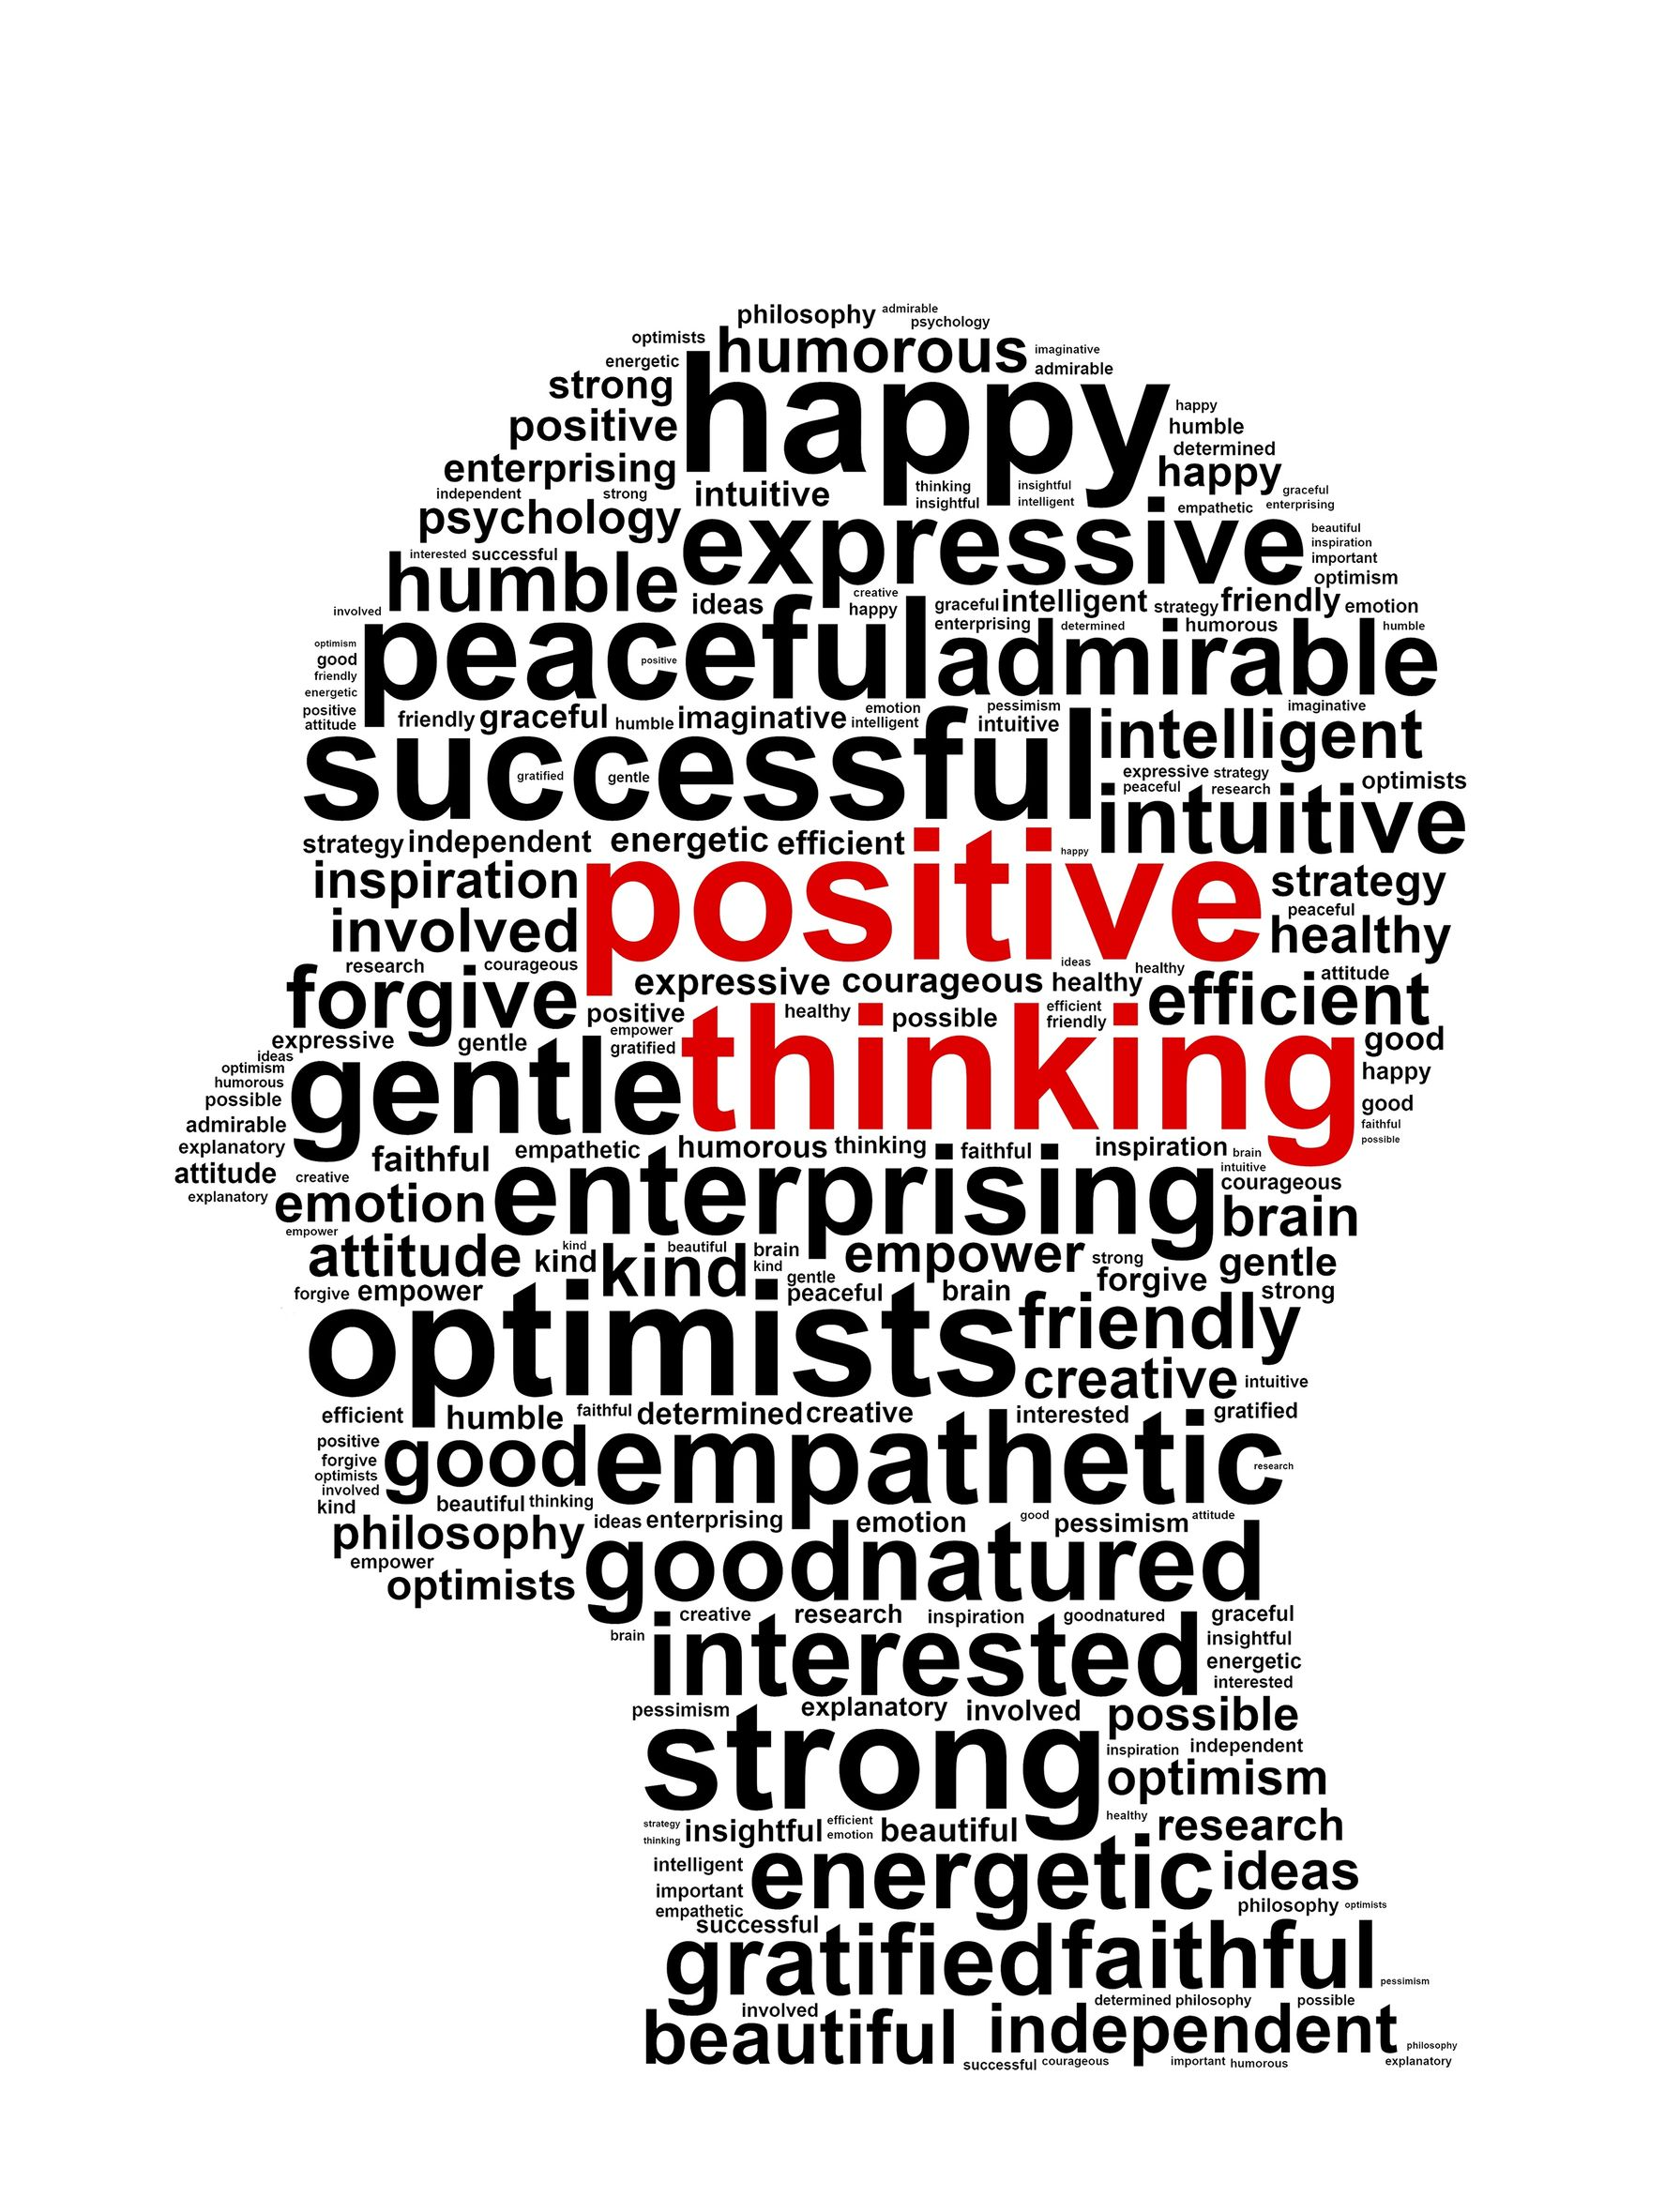 7 Tips For Enlightened Living Through The Power Of Positive Thinking